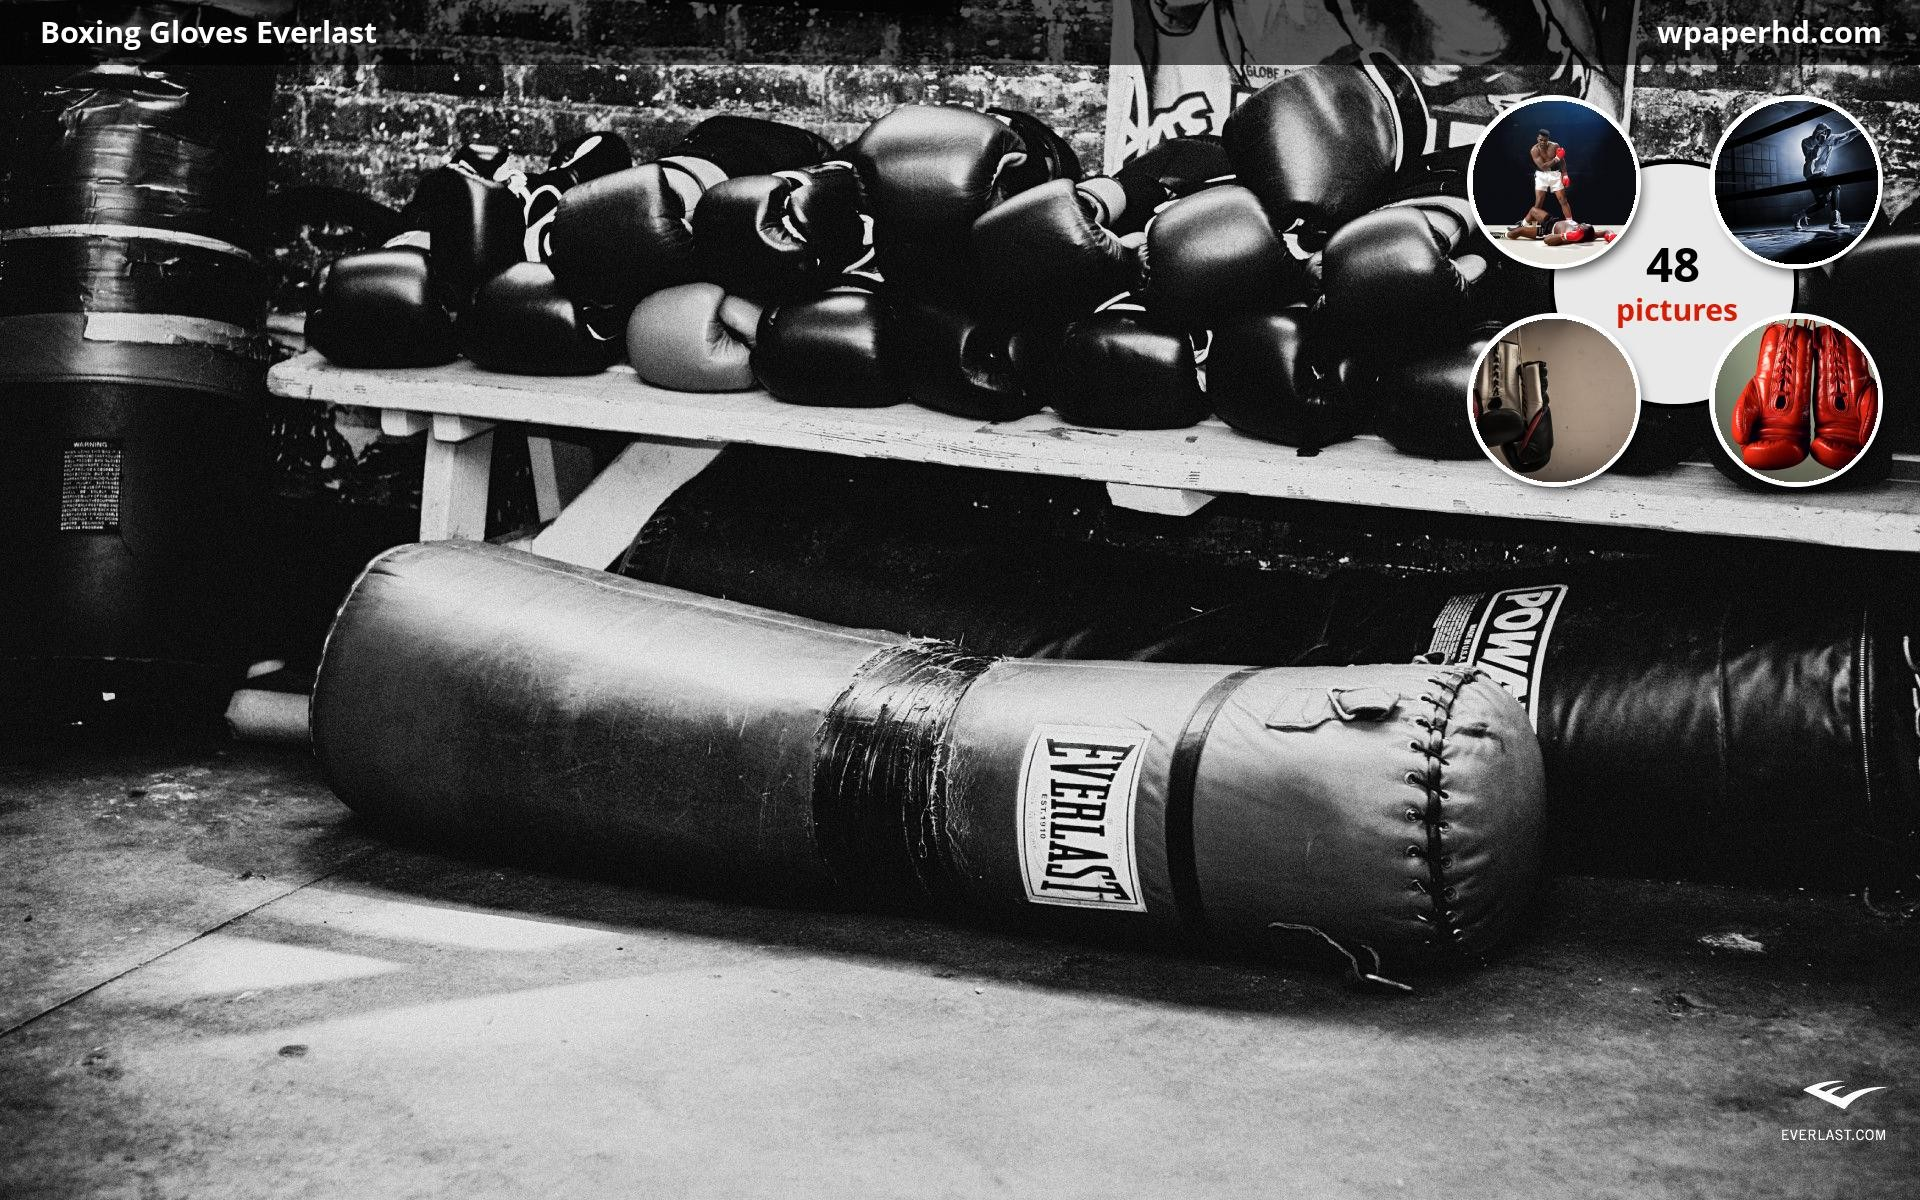 Res: 1920x1200, You are on page with Boxing Gloves Everlast wallpaper, where you can  download this picture in Original size and ...